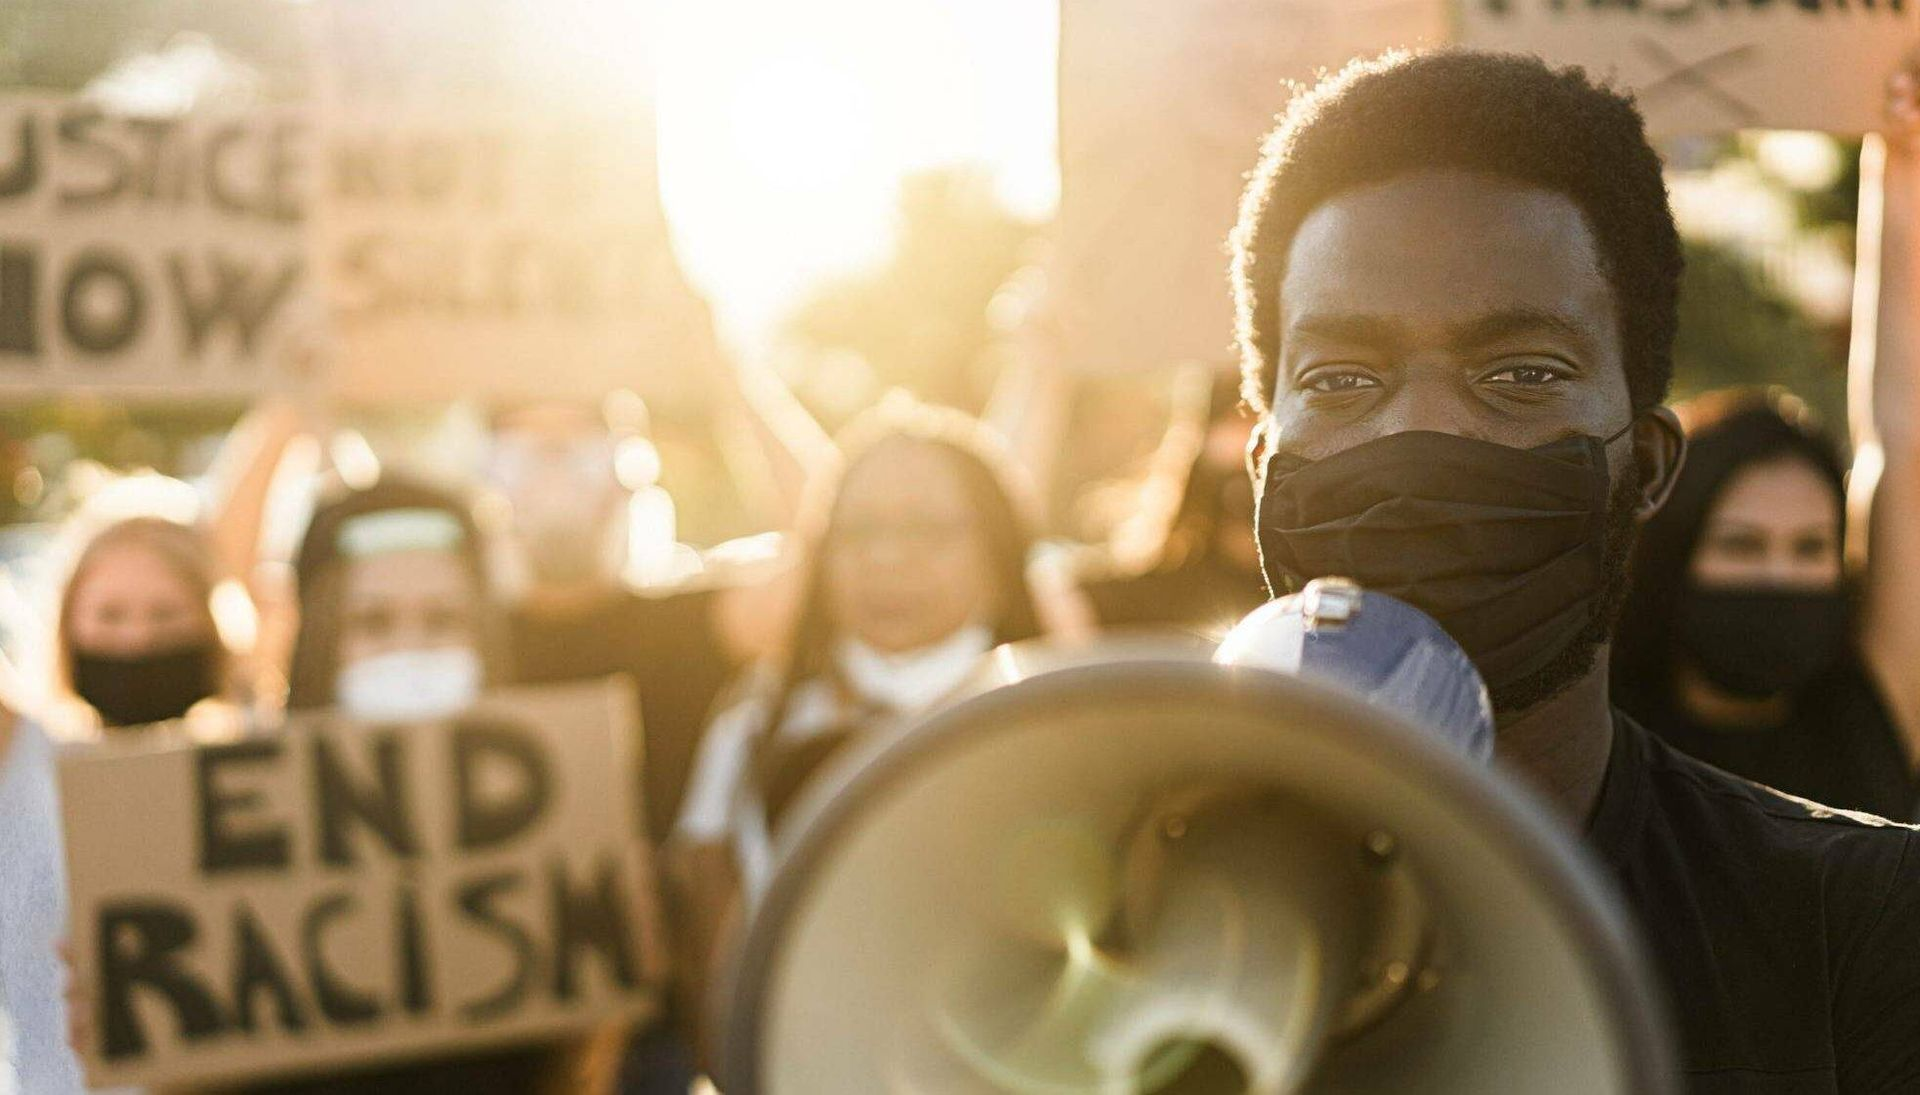 Protesters at a Black Lives Matter rally hold signs and megaphones in the street while wearing masks. Fighting for Black Lives Rewire PBS Our Future